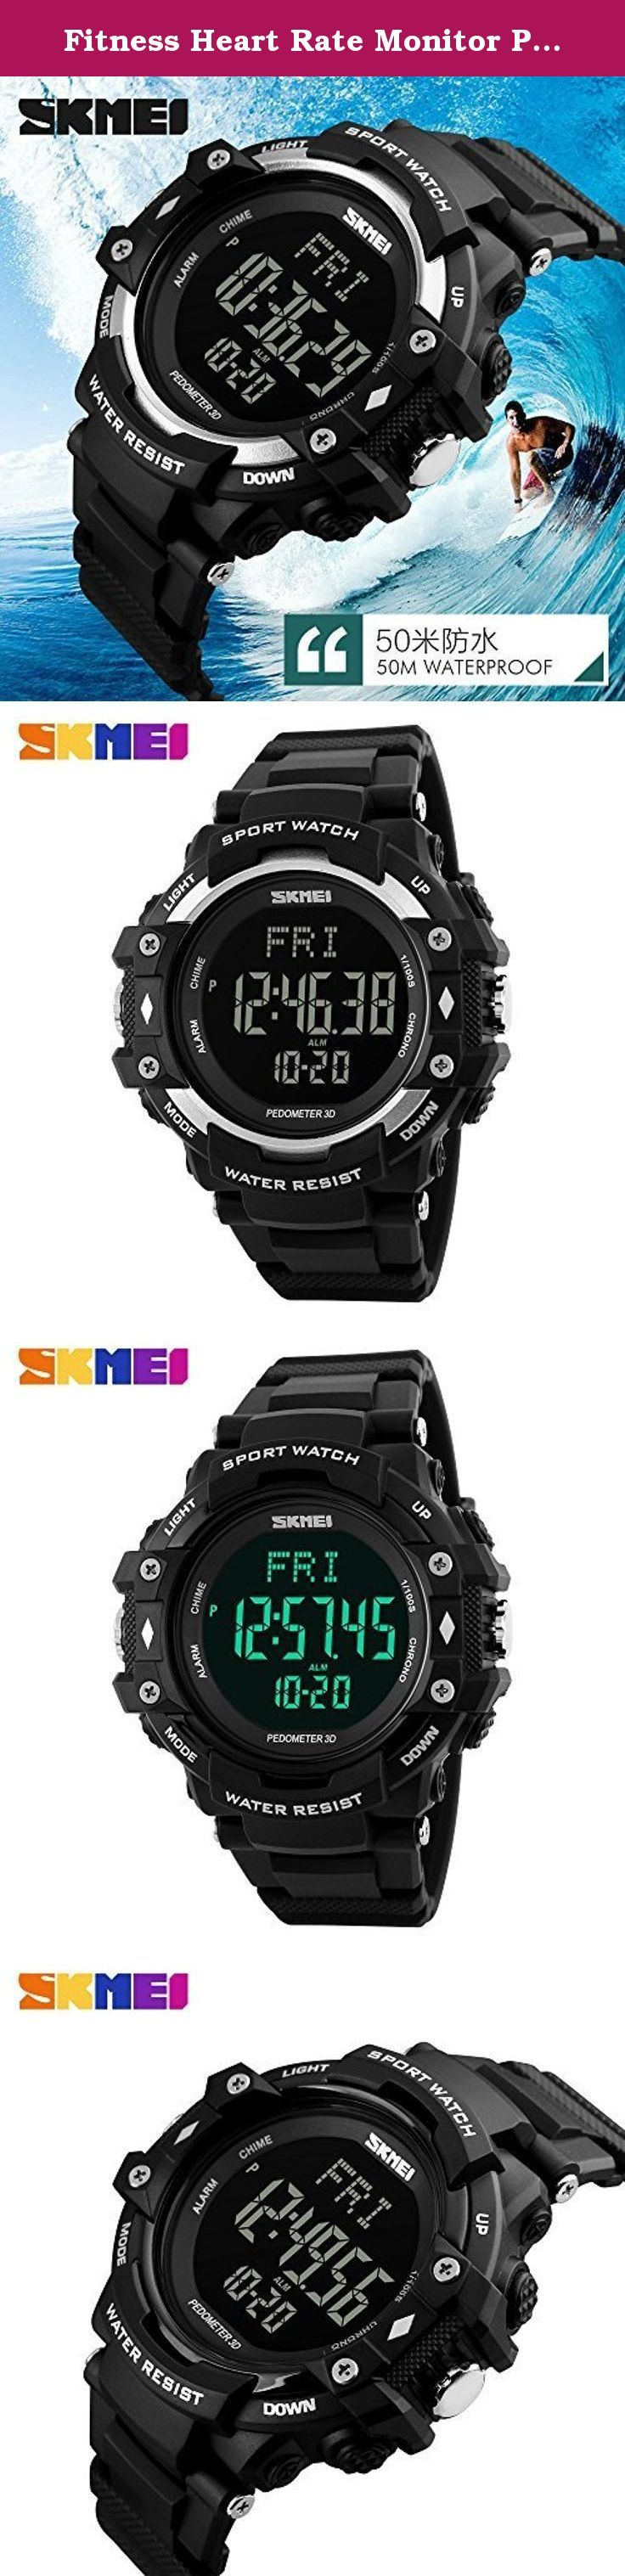 Fitness Heart Rate Monitor Pedometer Watch For Men Women Sport Watches Digita. Fitness Heart Rate Monitor Pedometer Watch For Men Women Sport Watches Digital Electronic Wrist watches Clock Feature: Strap: PU Silicone Strap Case: PC Silicone Case Waterproof: 50 Meters Function: Stop watch, Luminous, Pedometer, Measuring Heart Rate, Countdown, Timer Alarm Clock, The Date, Day of The Week, Open Lock. Color:Black,Silver. .